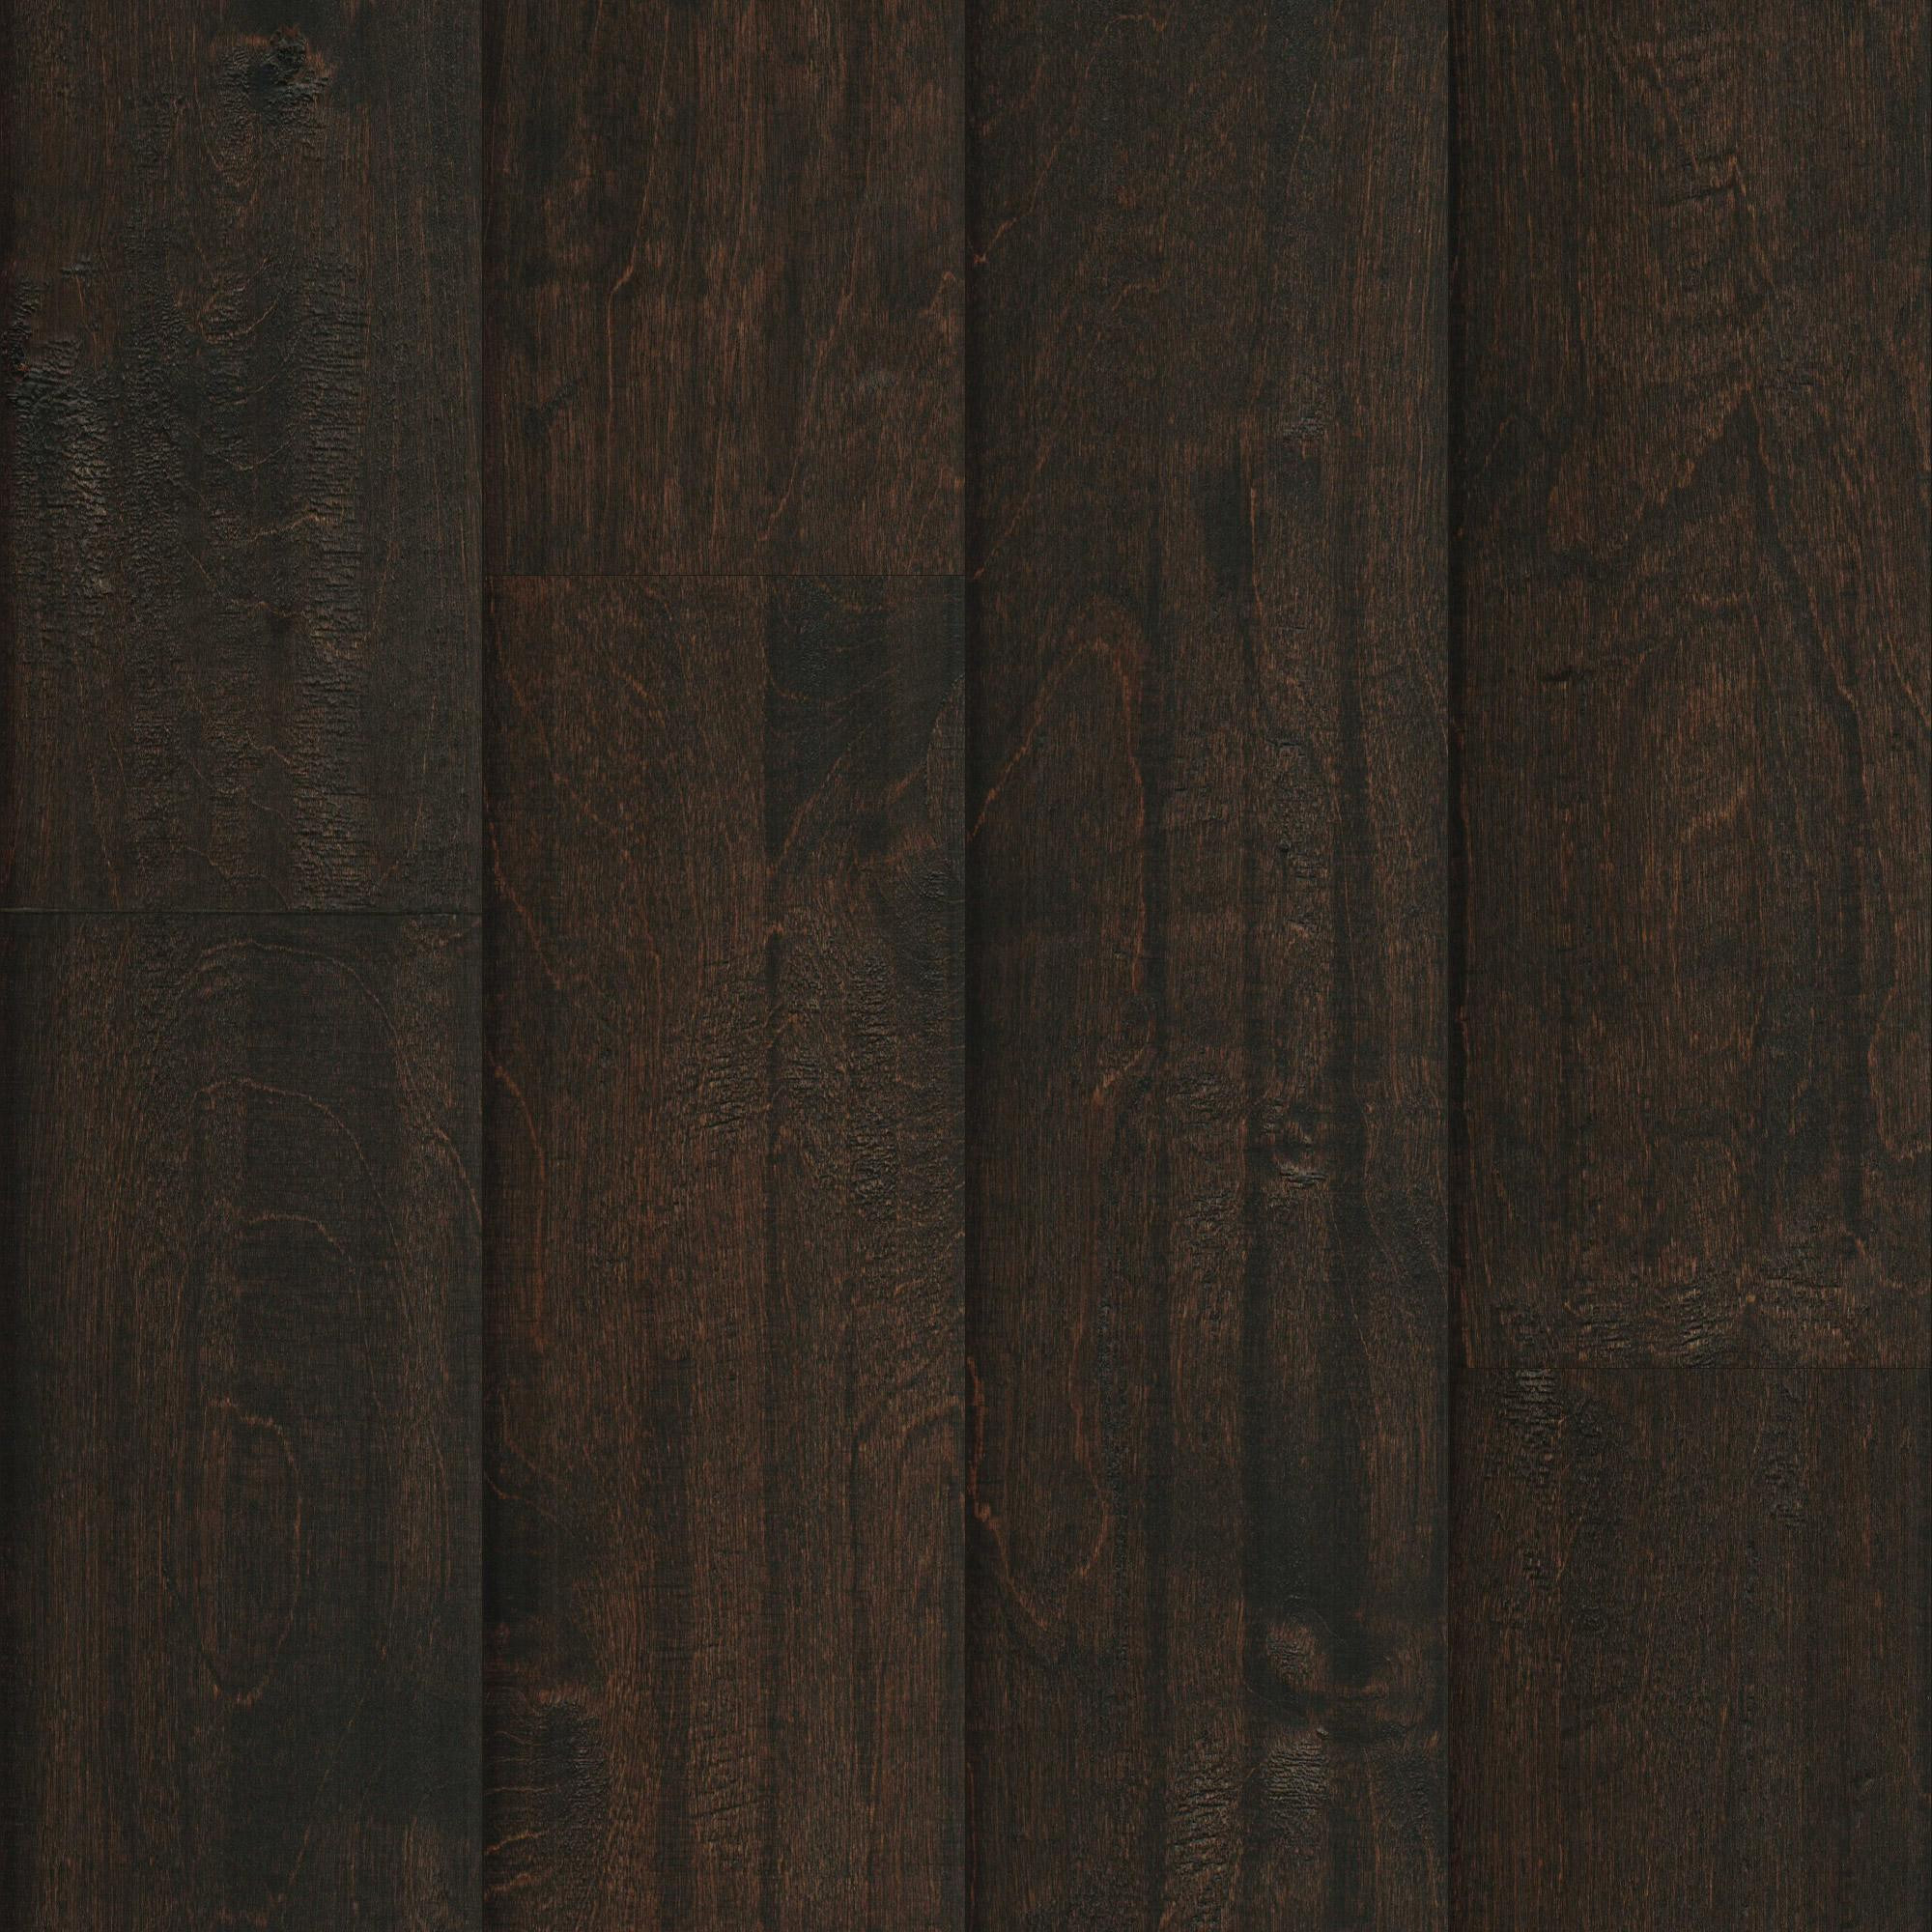 birch hardwood flooring reviews of mullican castle ridge birch espresso 5 engineered hardwood flooring with file 447 31